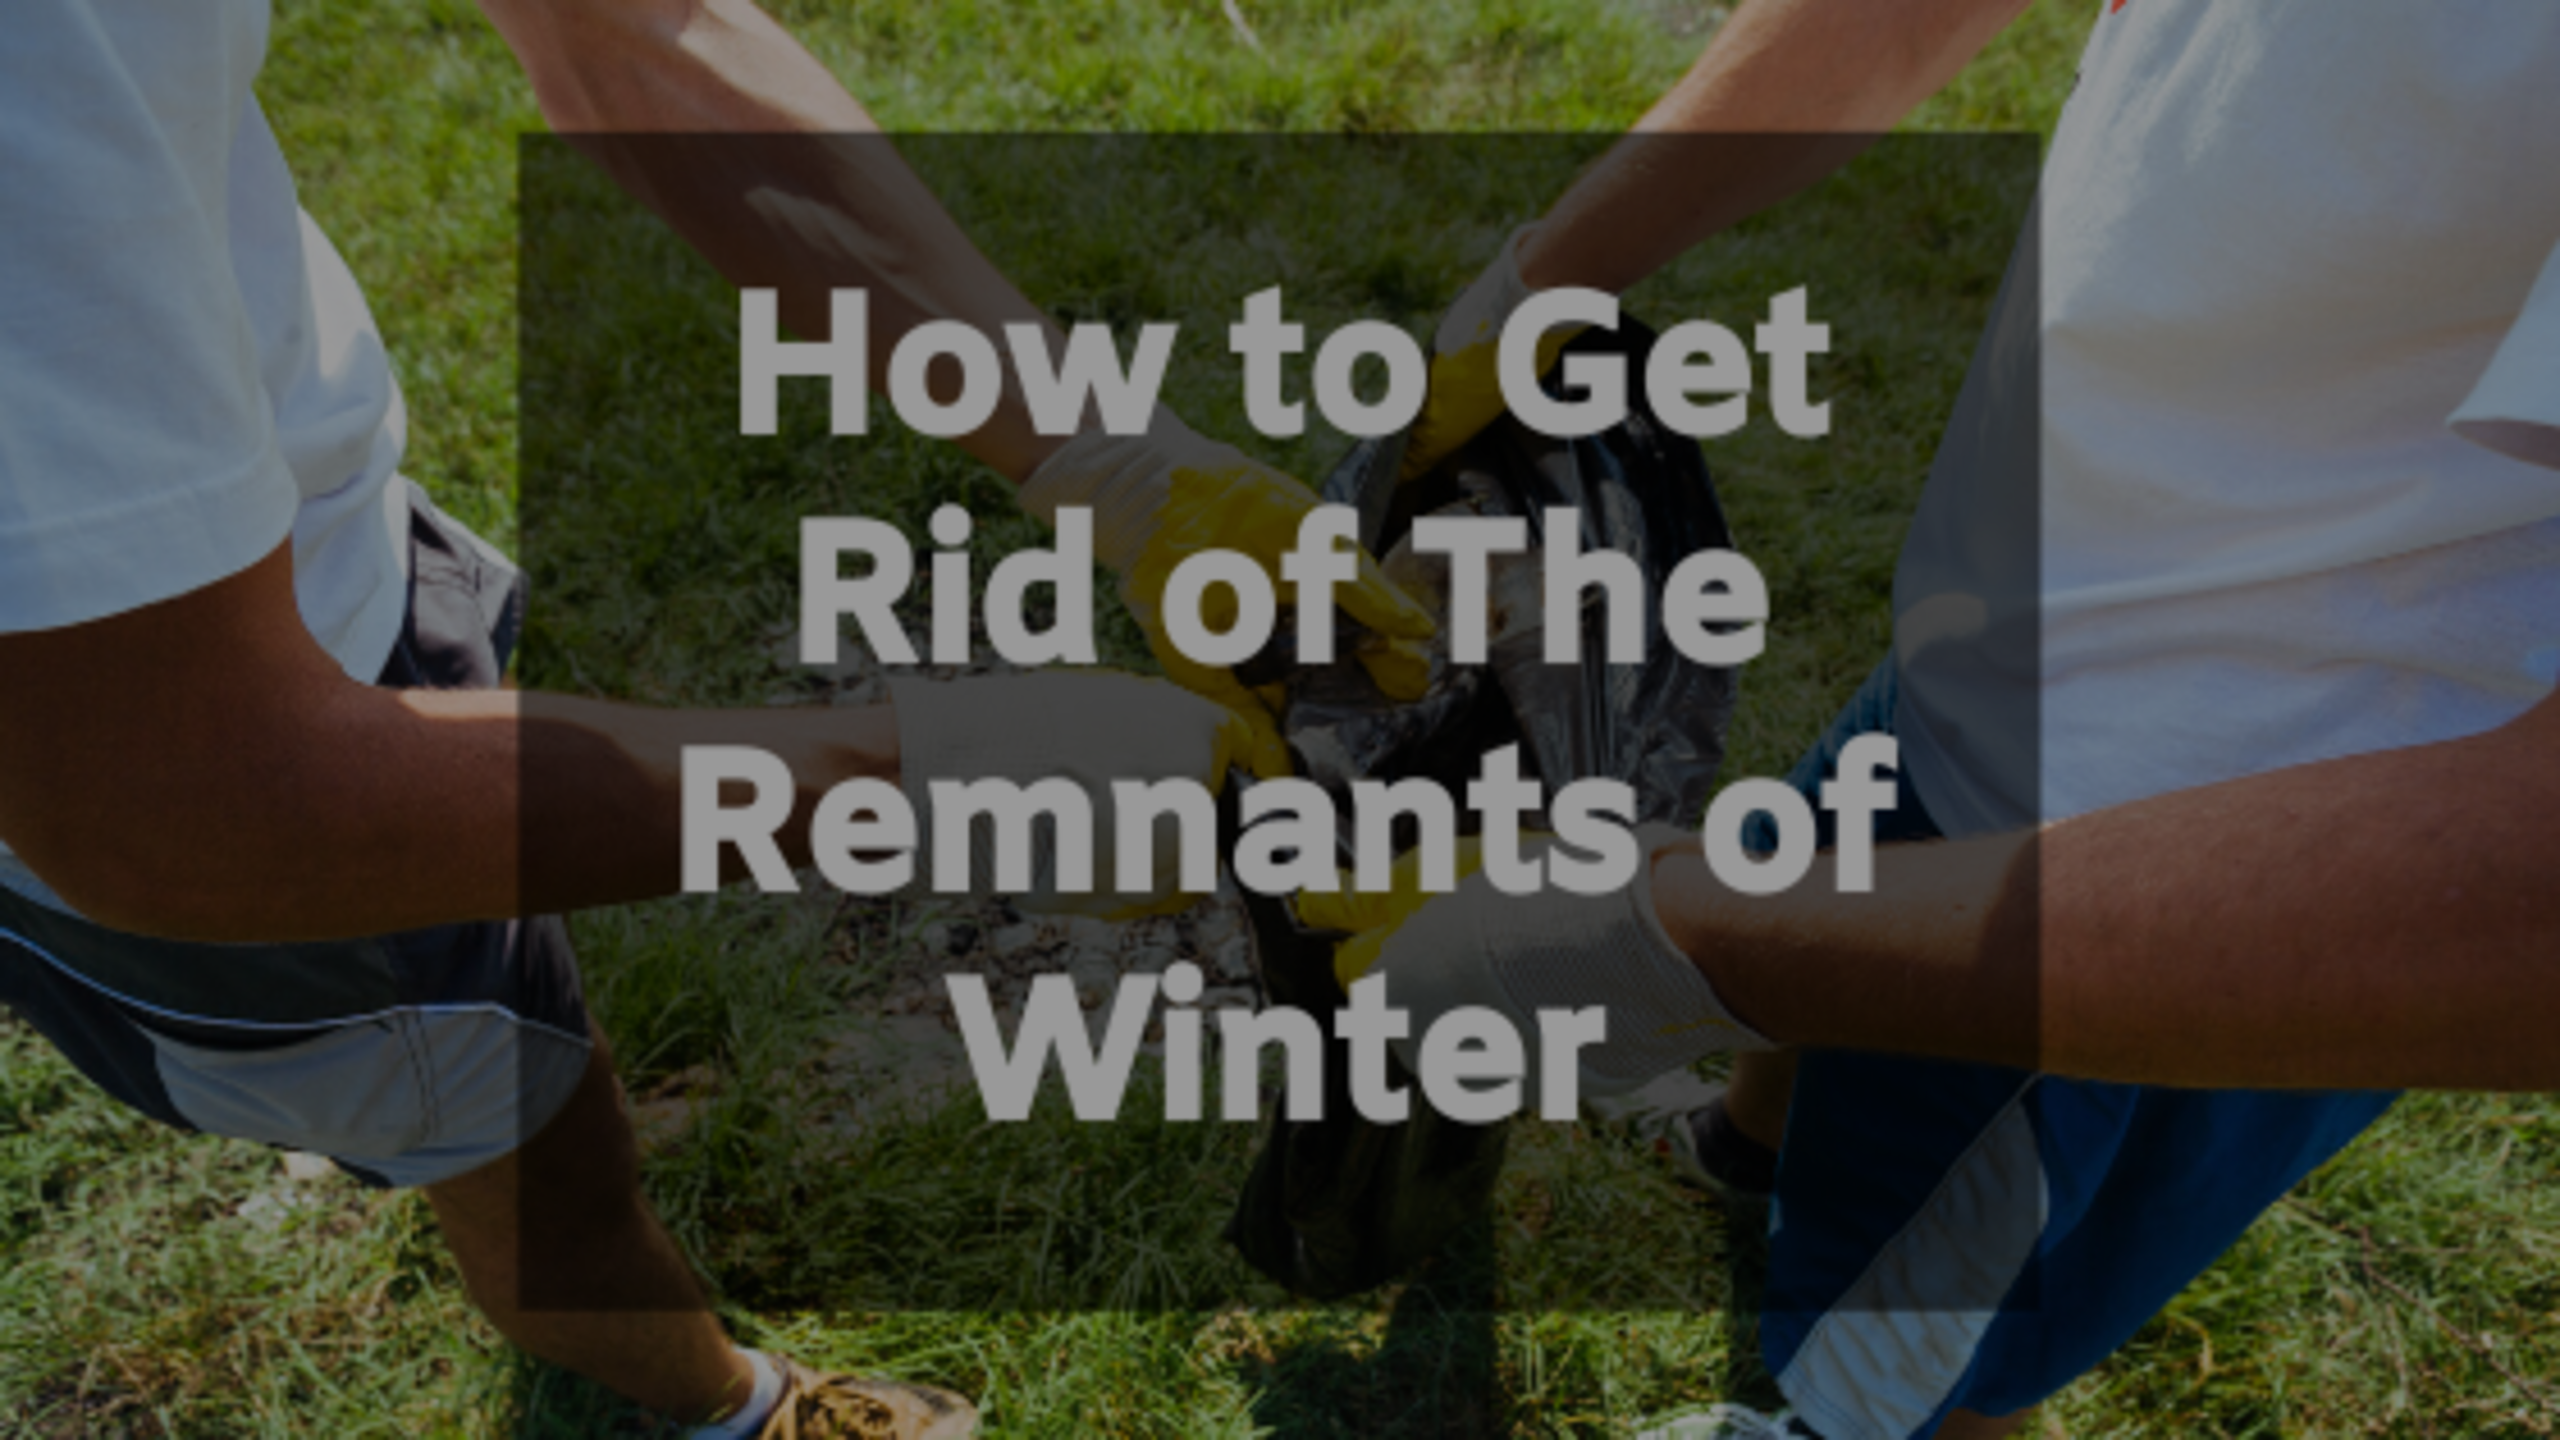 How to Get Rid of The Remnants of Winter